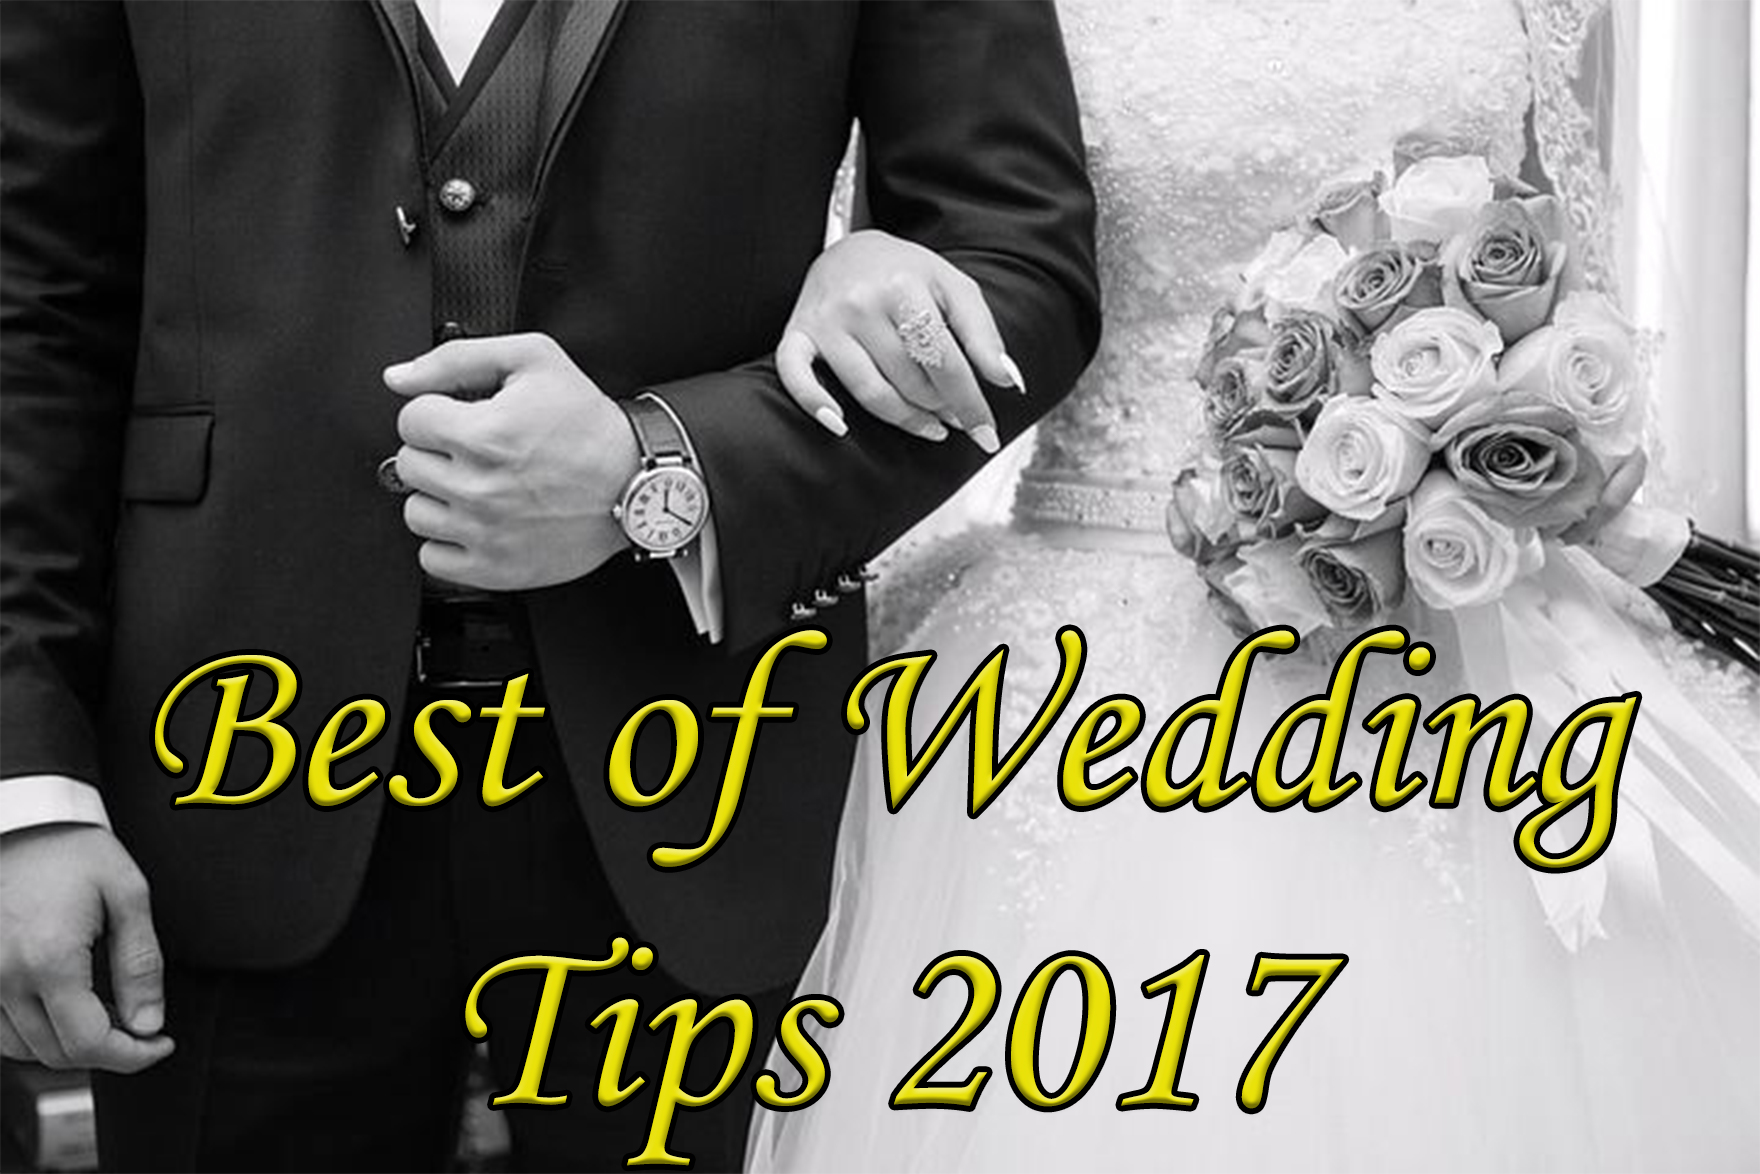 Best of 2017 Wedding Tips